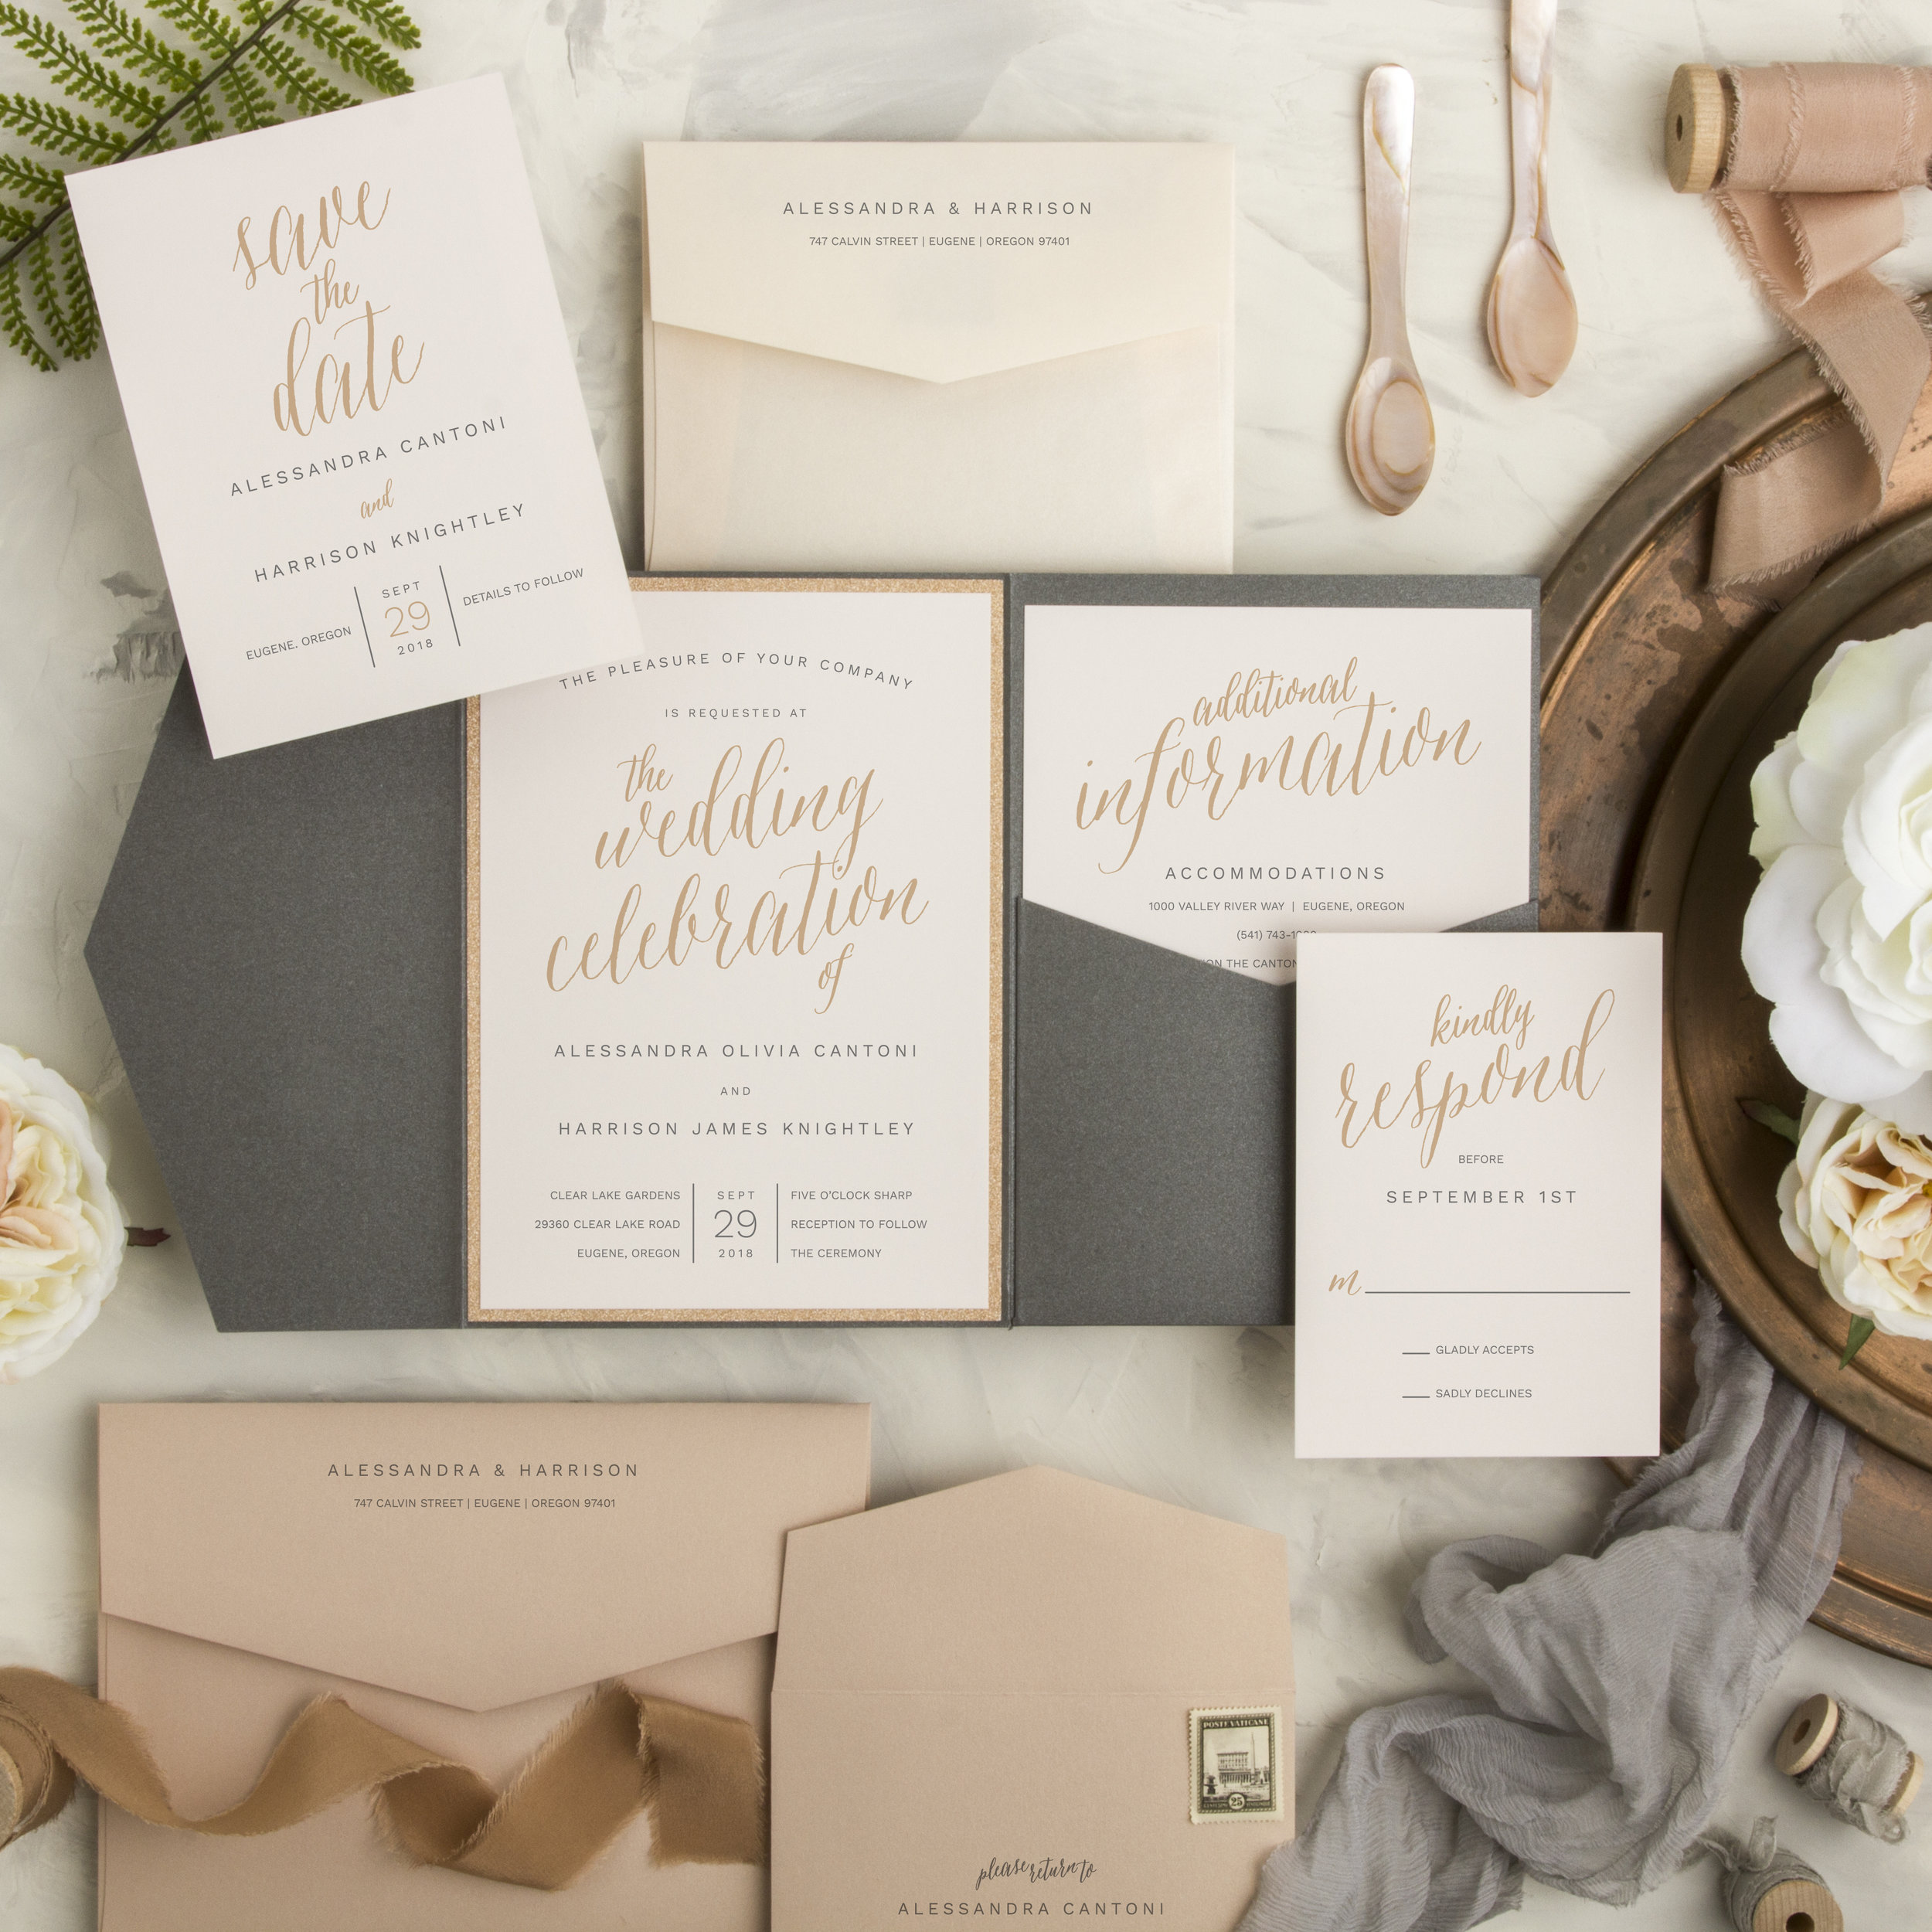 This modern, neutral color palette and script detail makes this wedding suite shine!